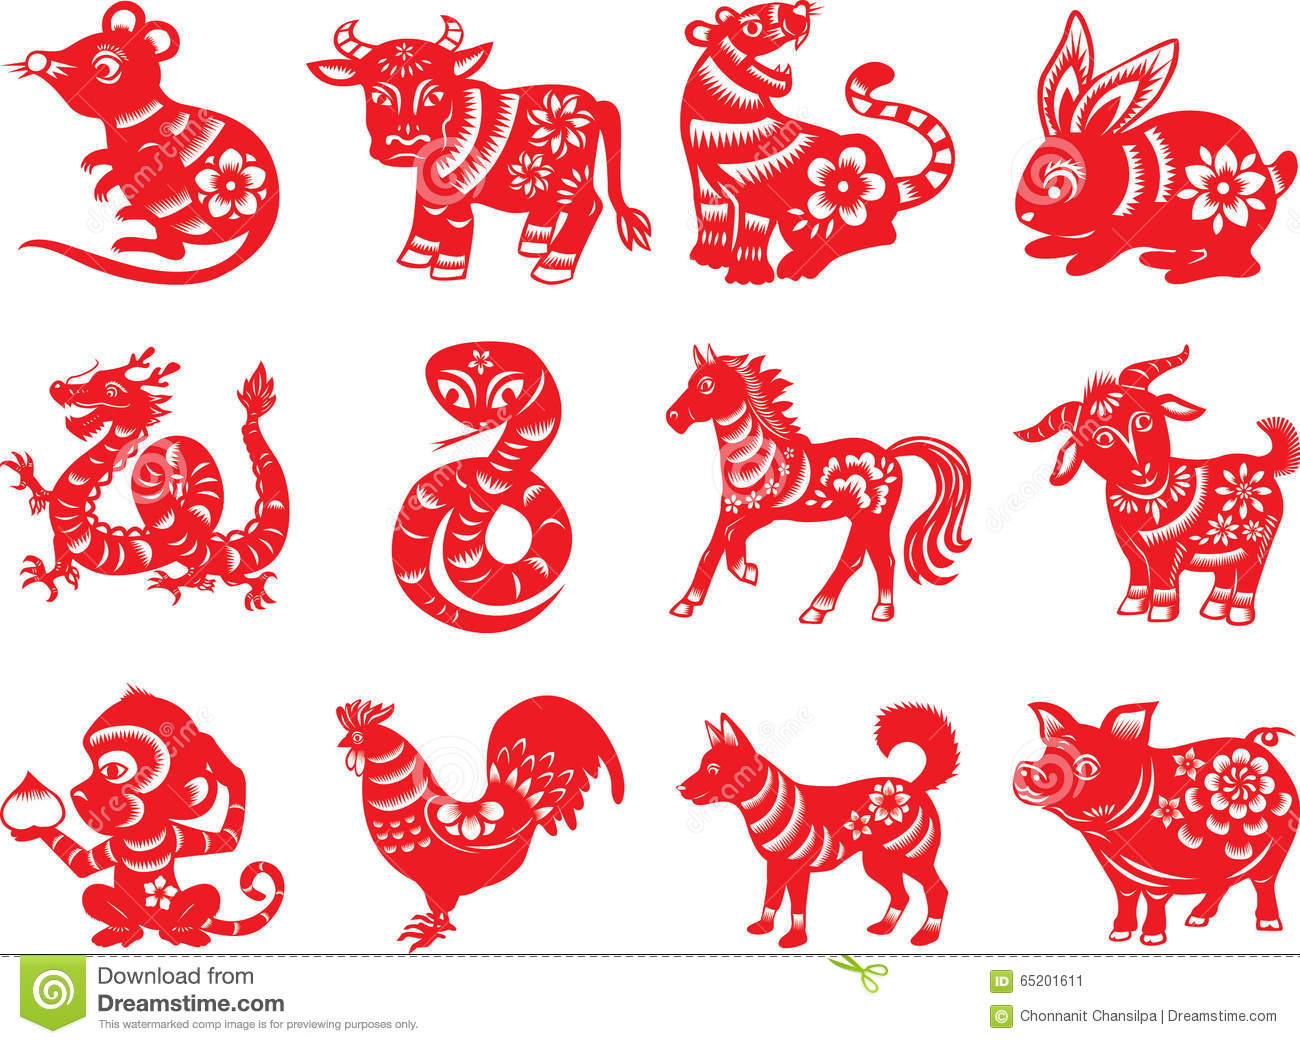 777cc96e6 Chinese zodiac paper cut style in red. Designers Also Selected These Stock  Illustrations